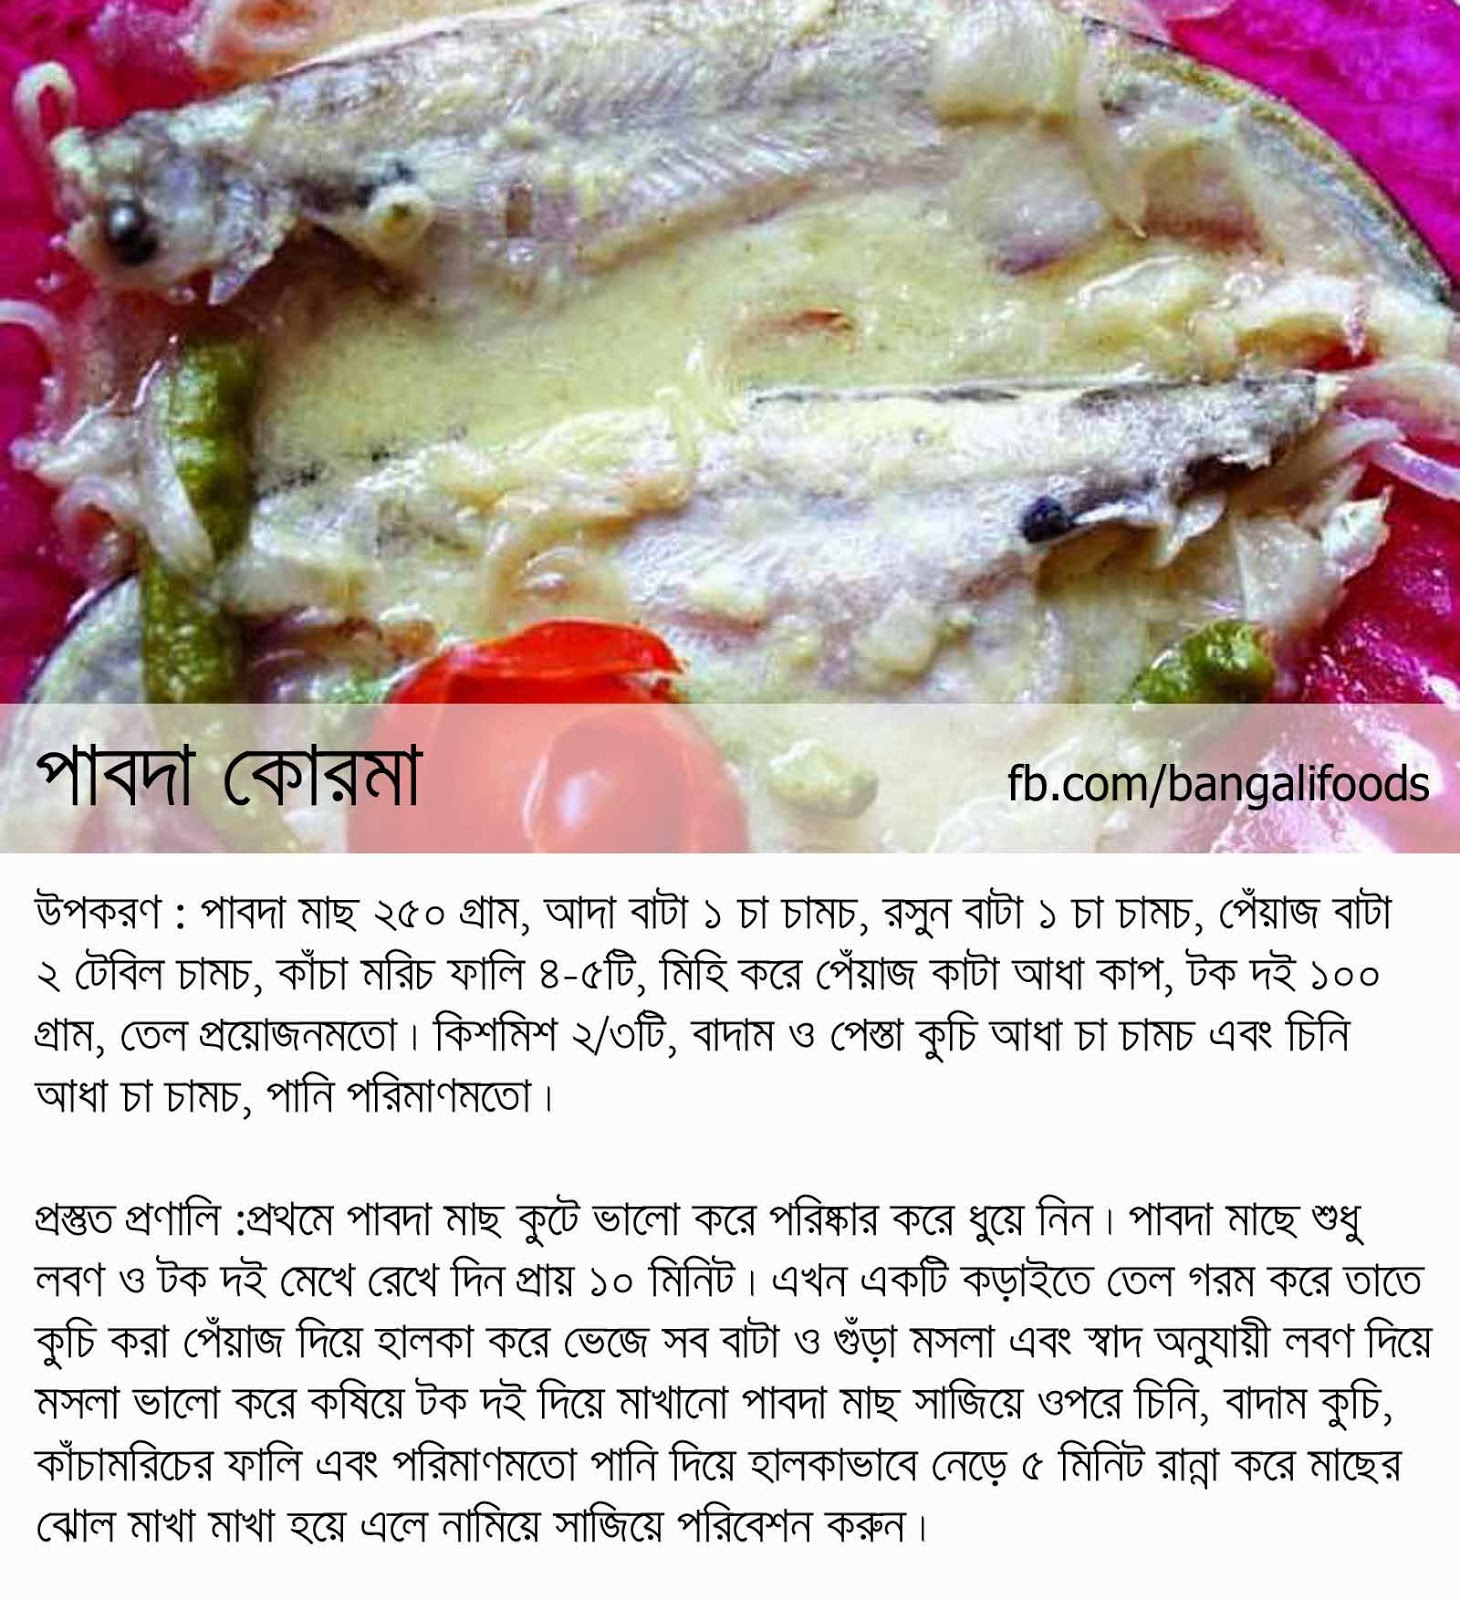 Food love recipes bangladeshi fish cooking recipes bangladeshi fish cooking recipes forumfinder Image collections